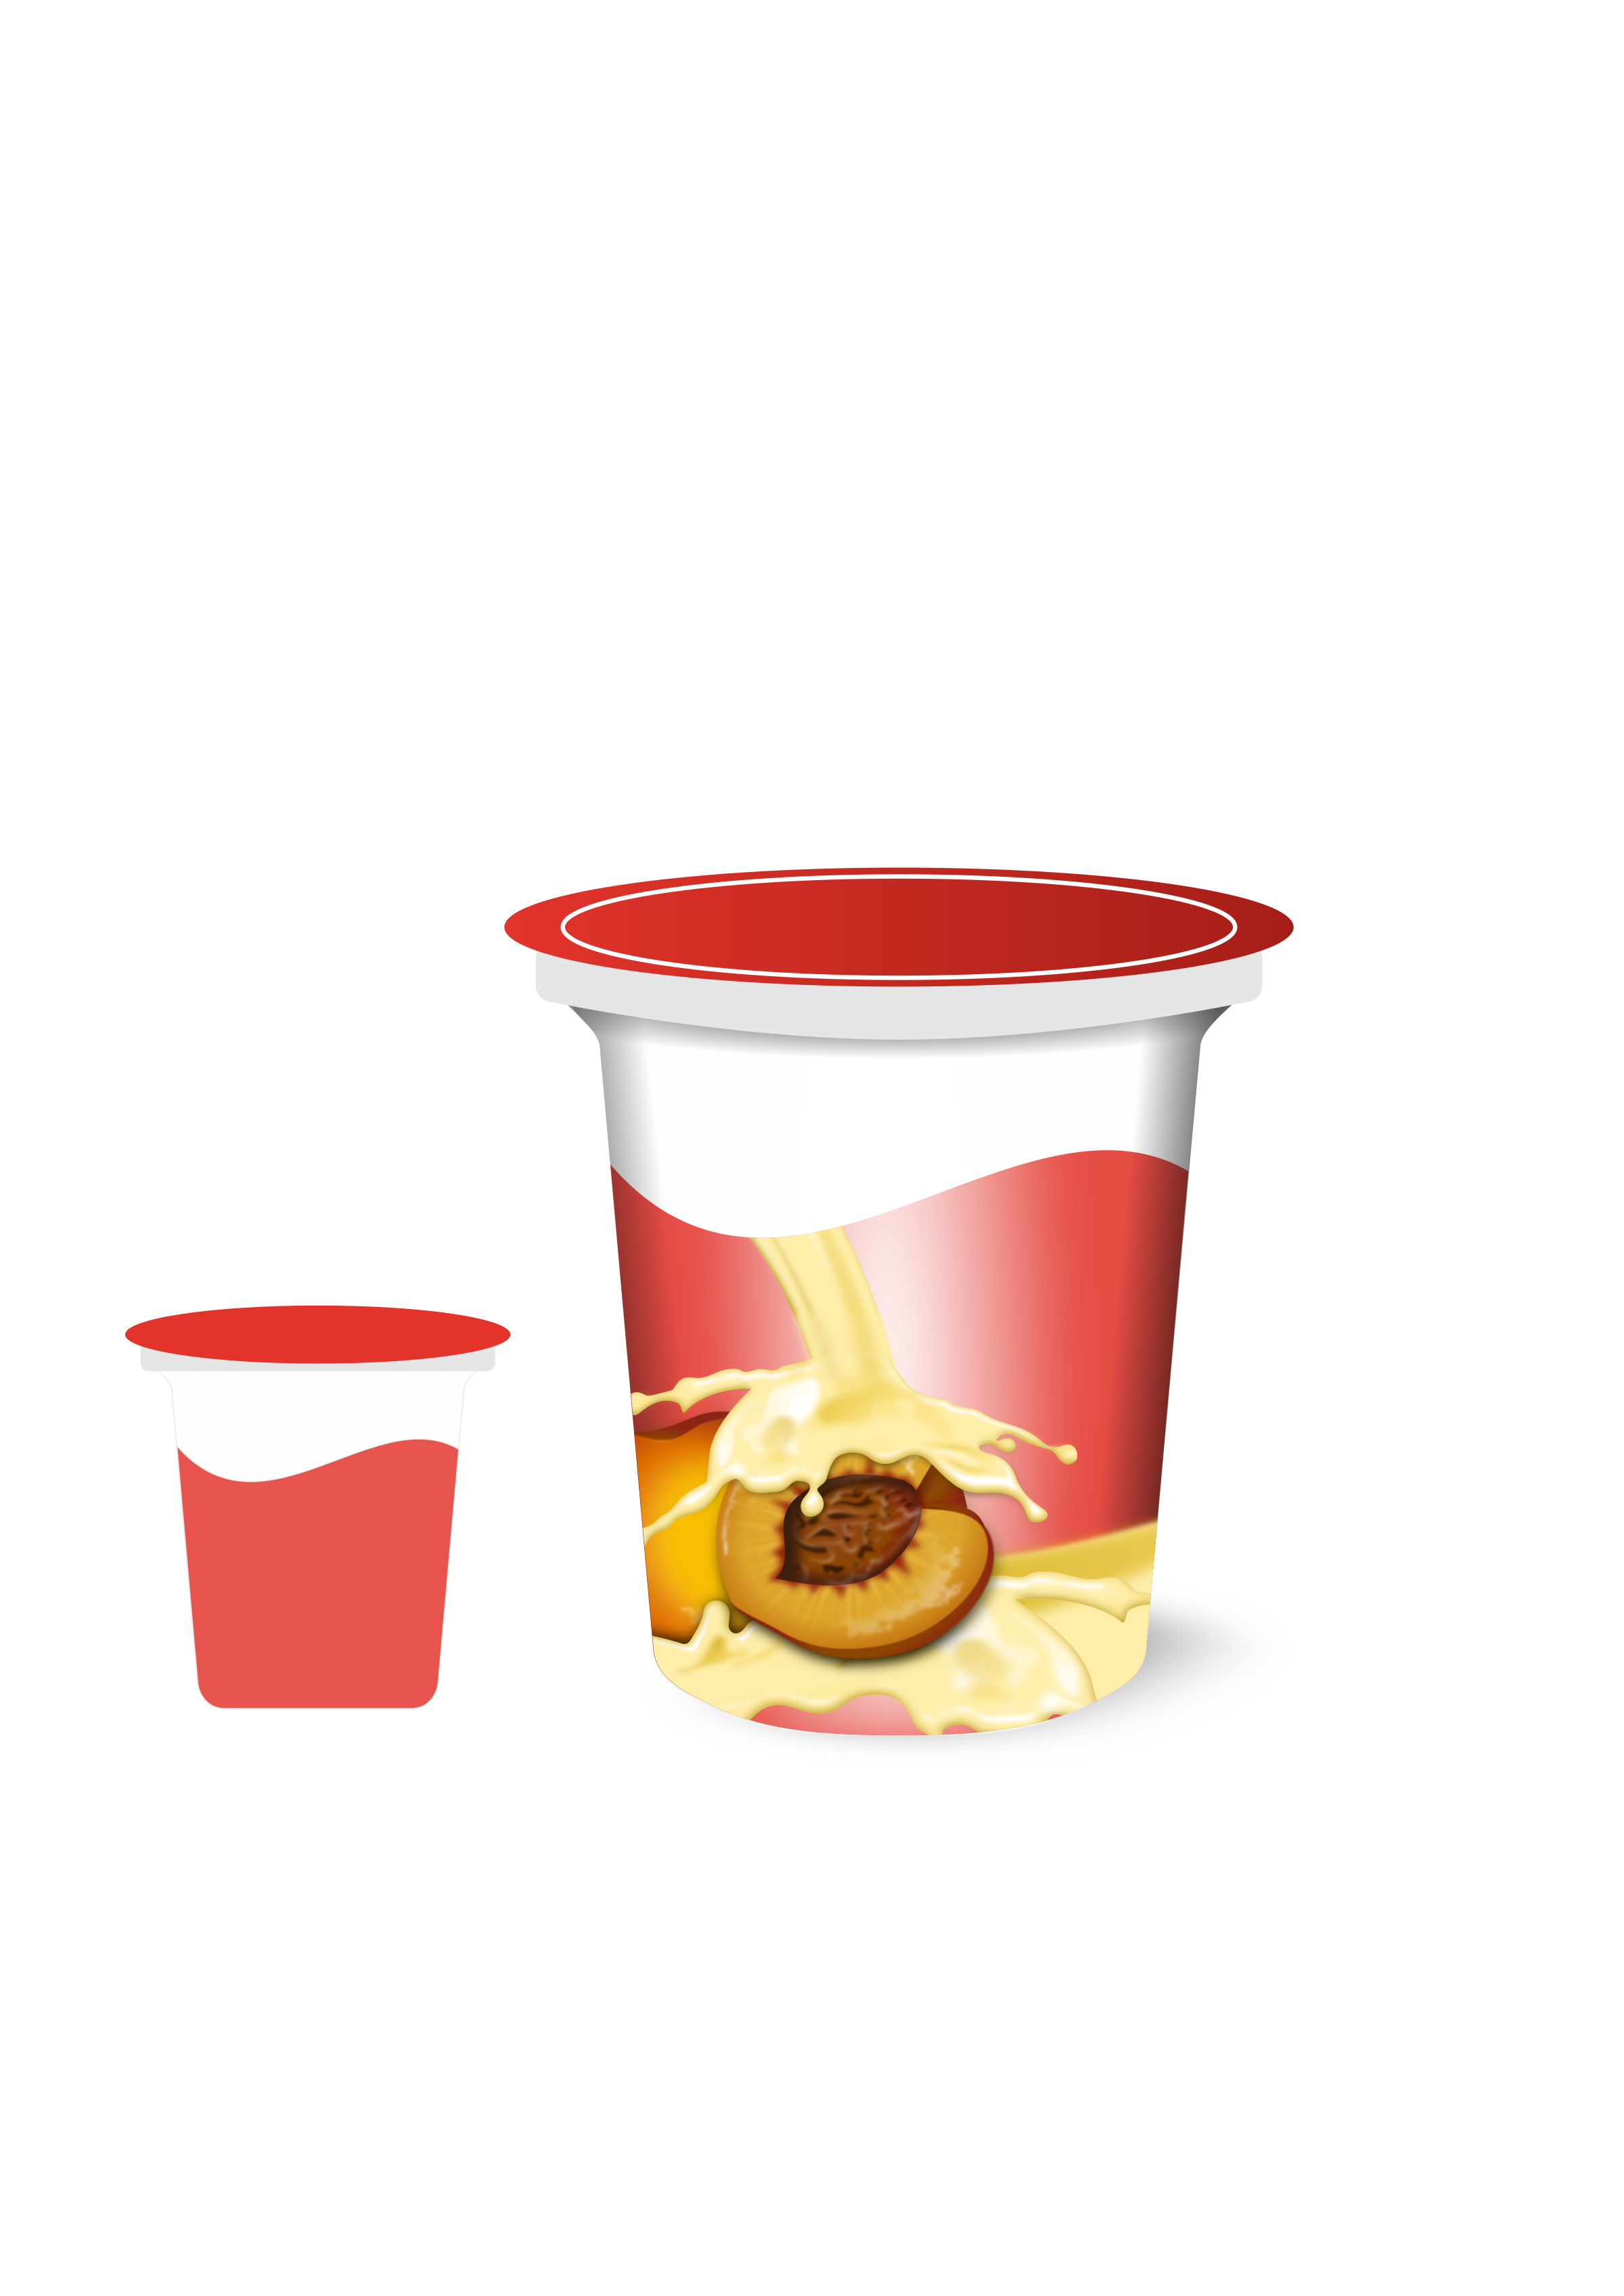 Yogurt clipart food packaging. Container free on dumielauxepices